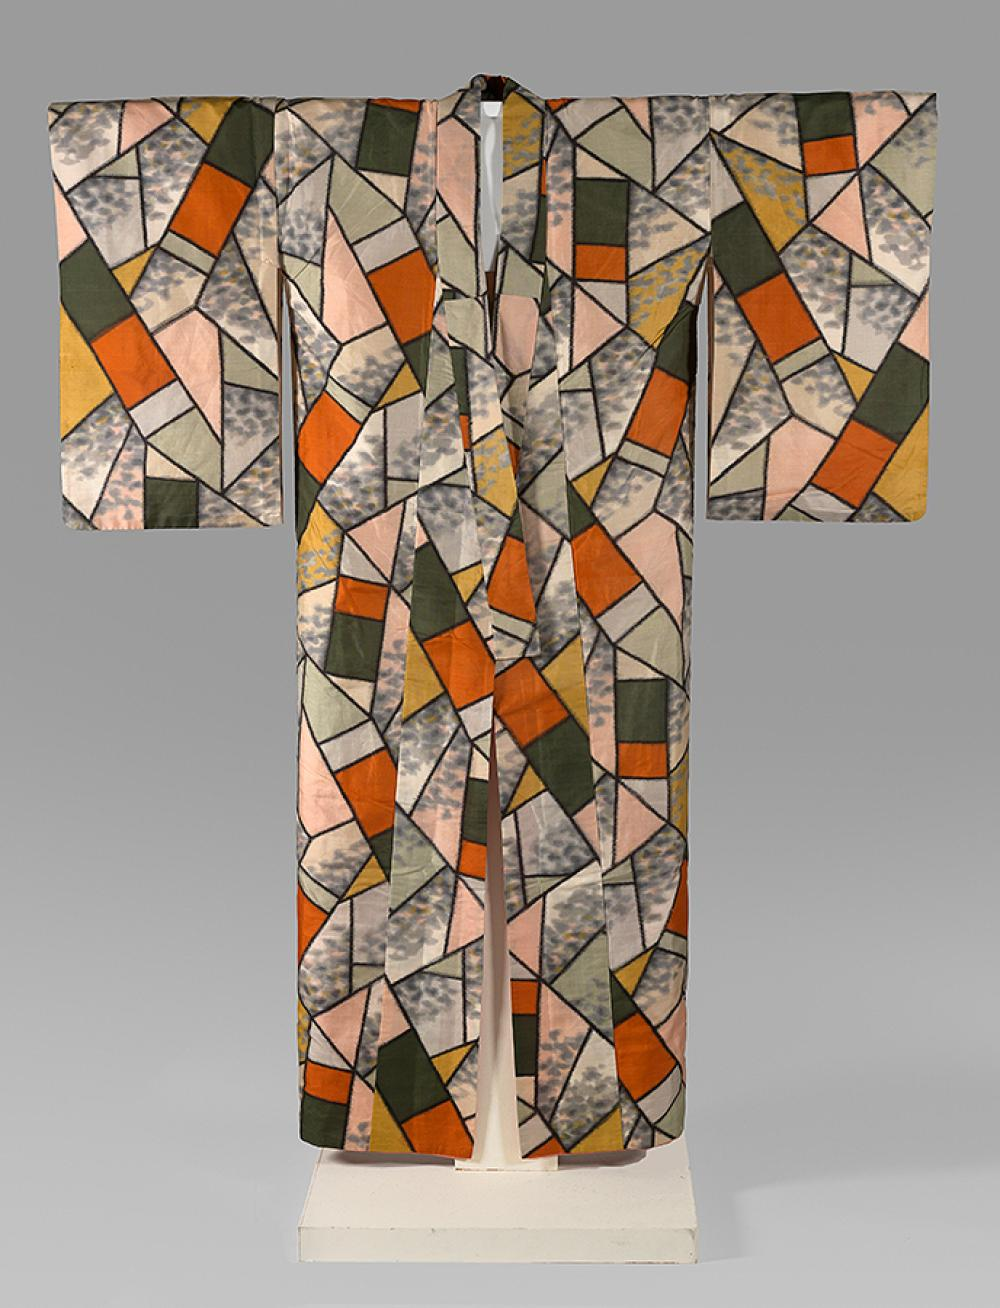 Kimono, on loan from Smith College Museum of Art